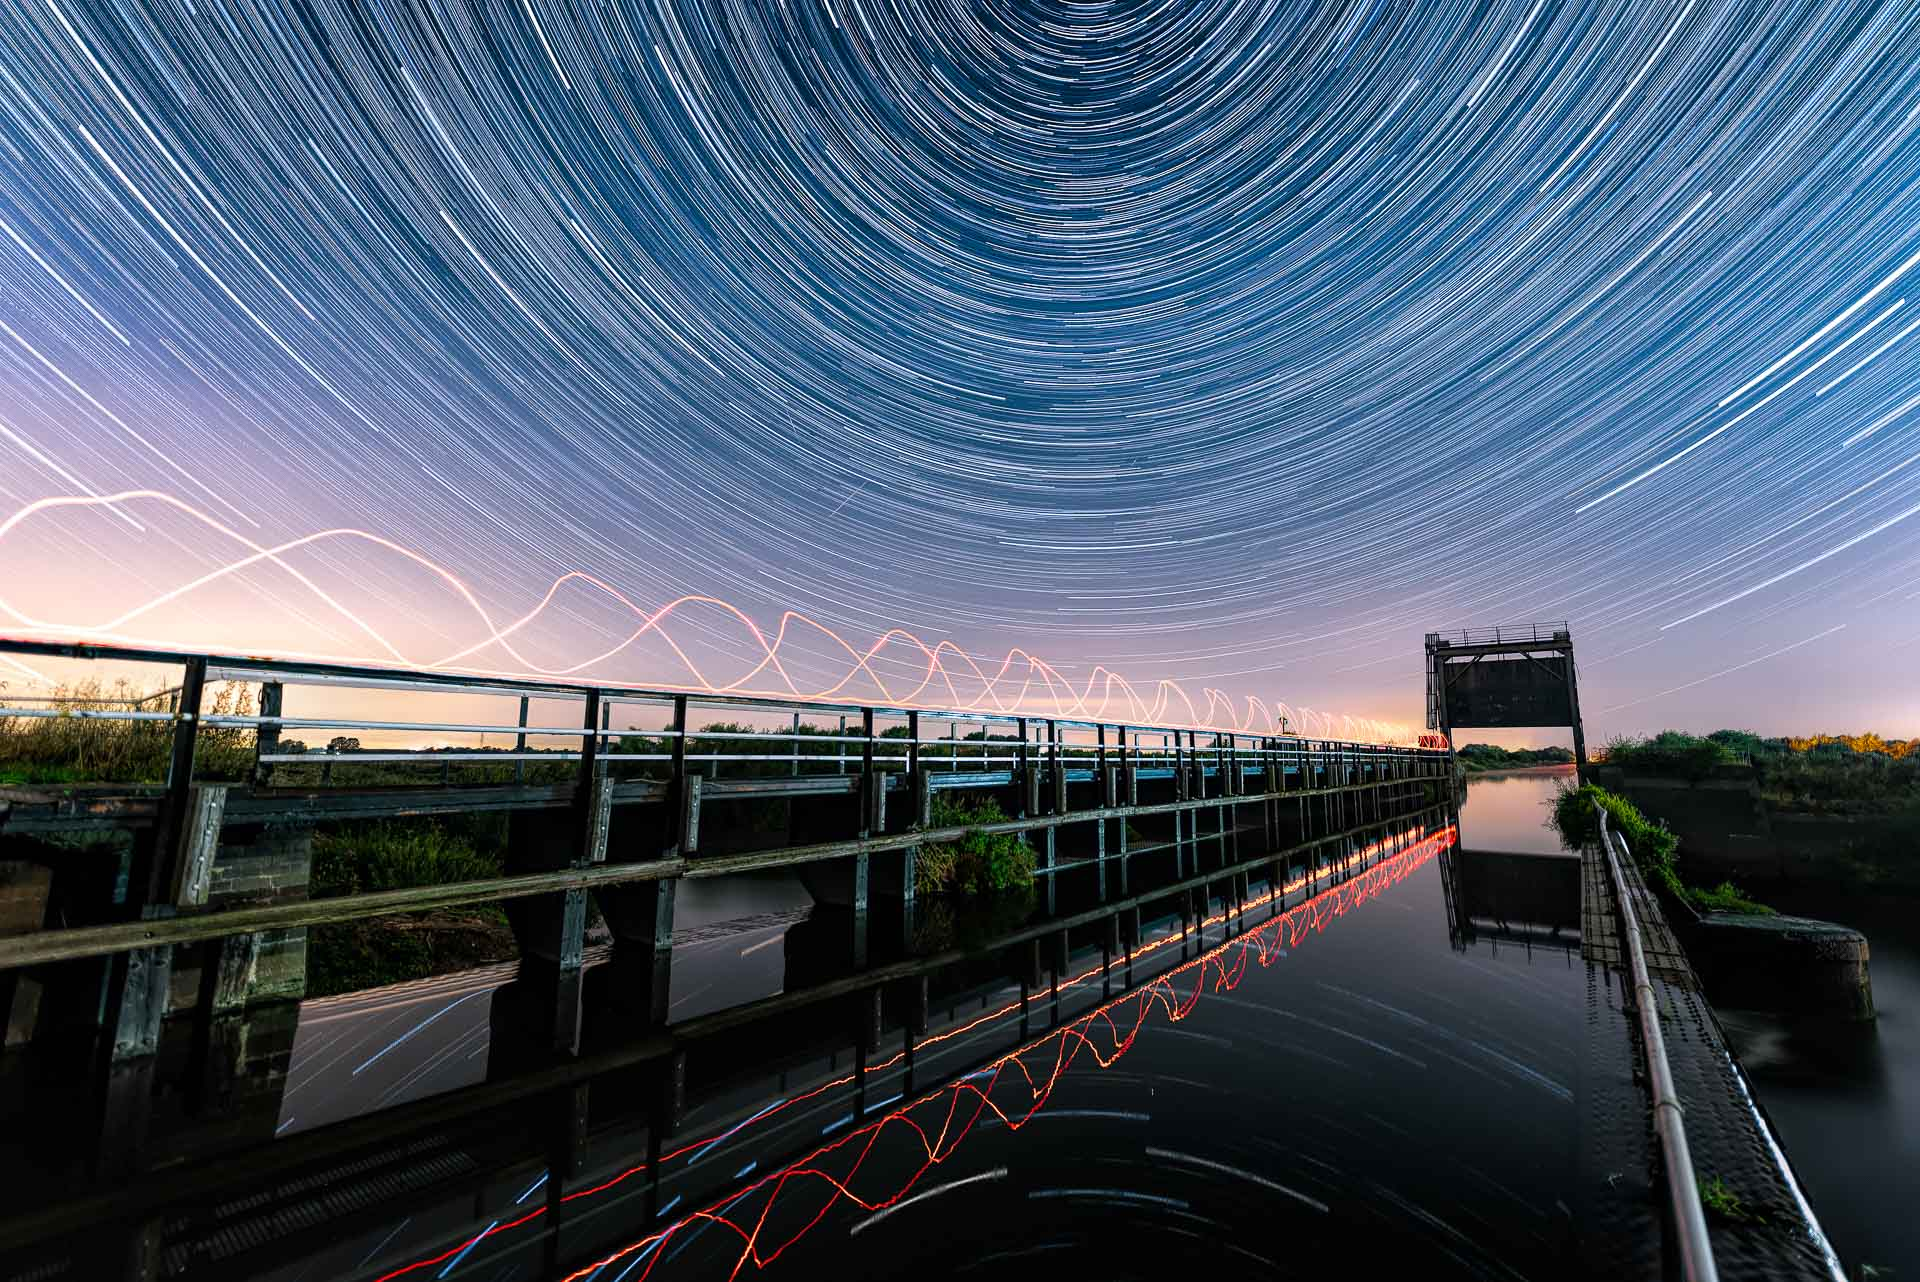 Jonathan Lodge  Star Trails over the Aqueduct